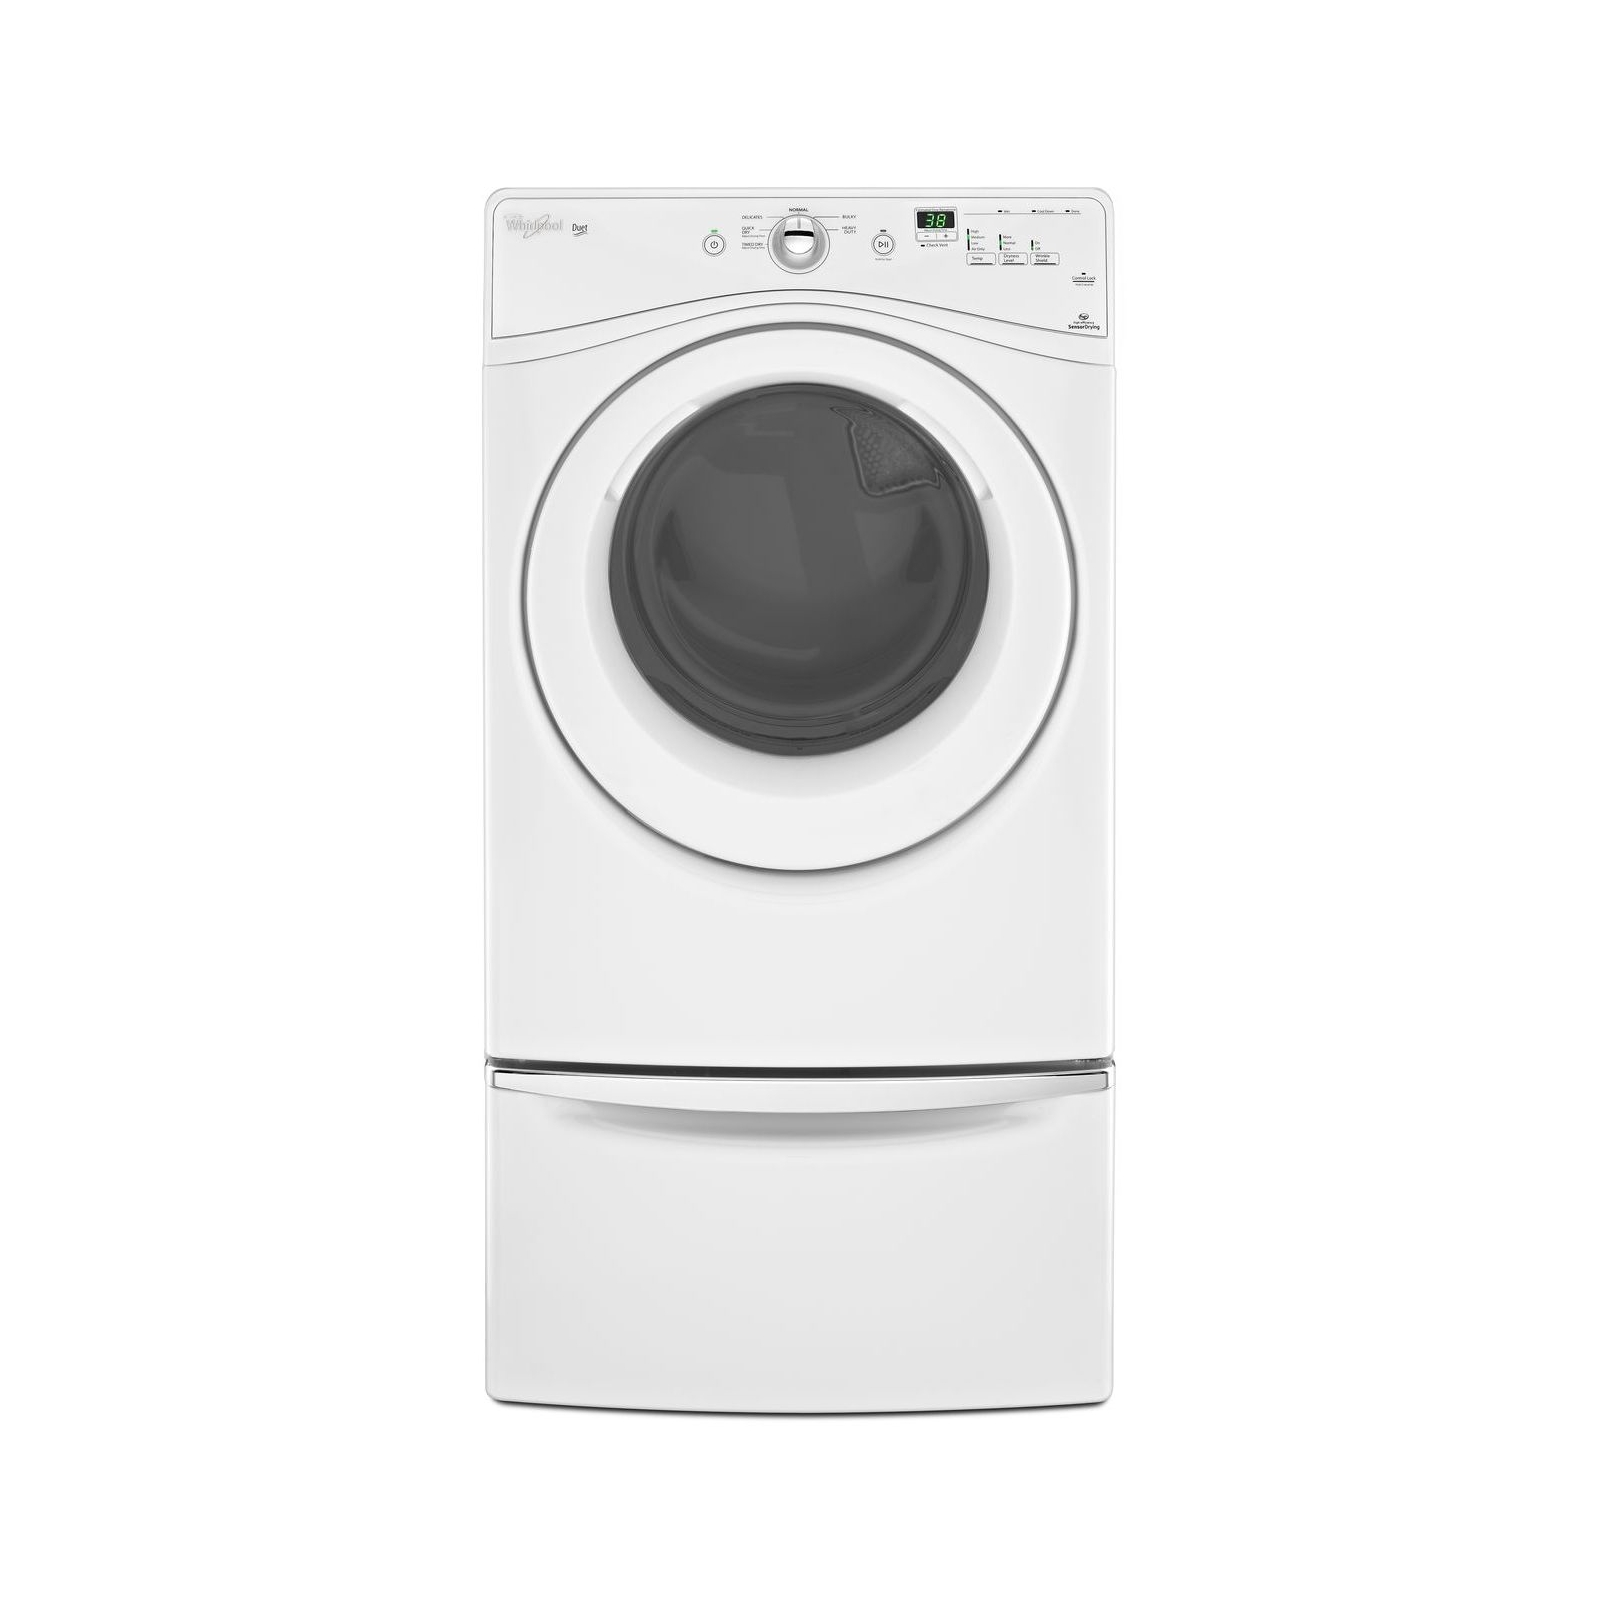 Whirlpool 7.4 cu. ft. Gas Dryer w/ WrinkleShield - White